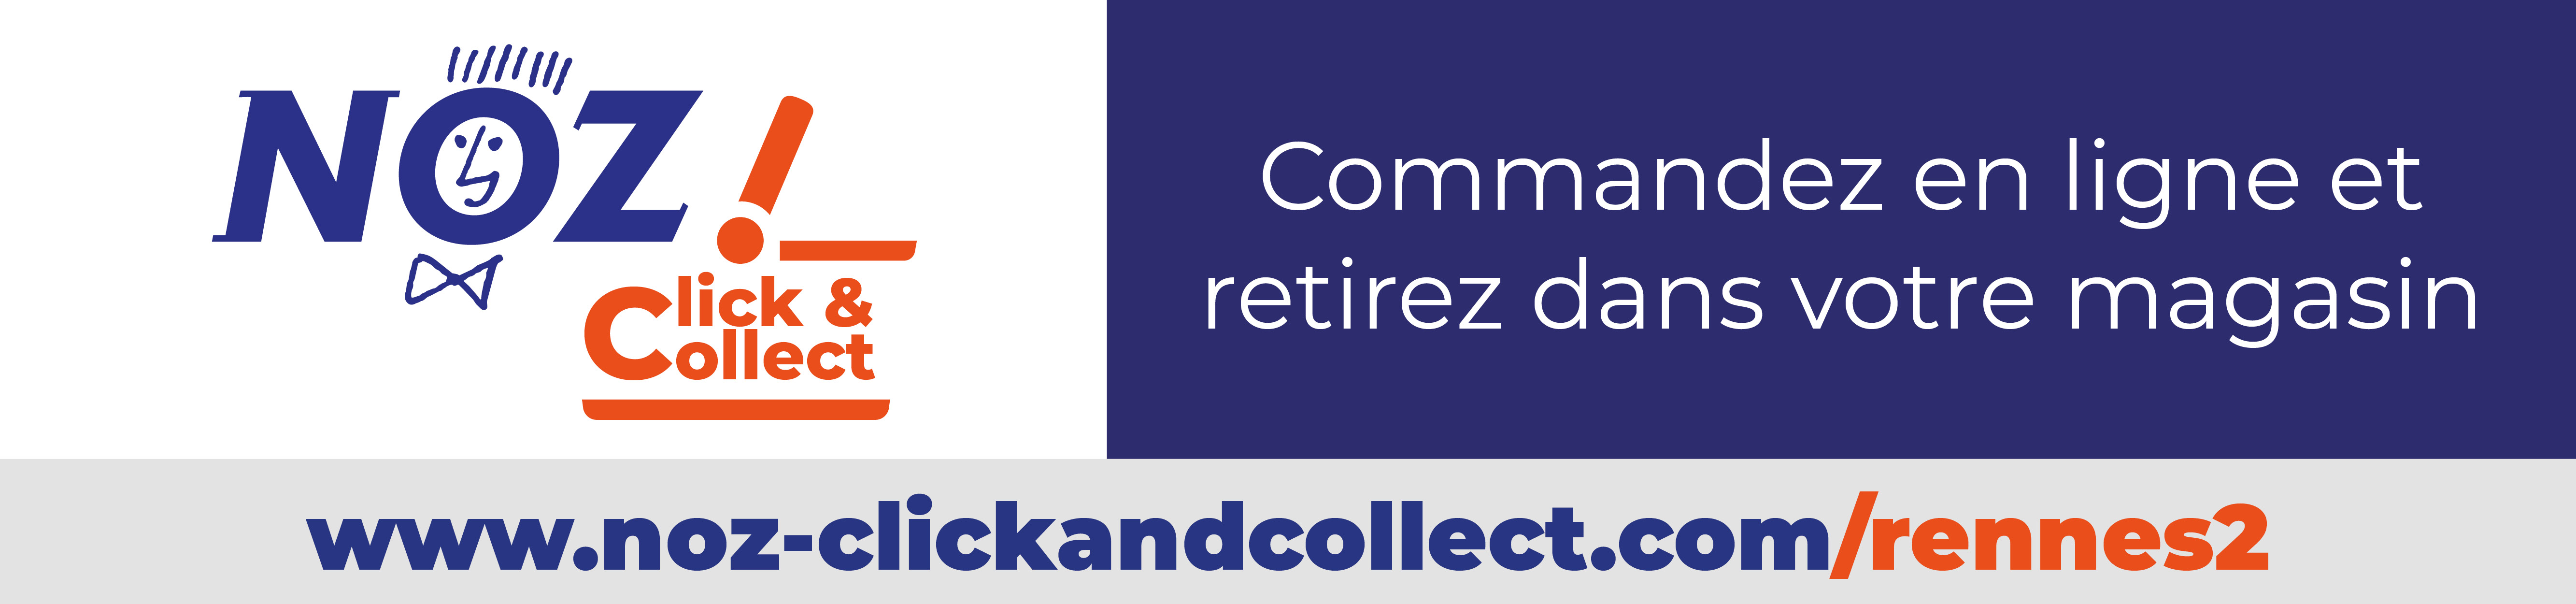 Click&Collect Rennes 2